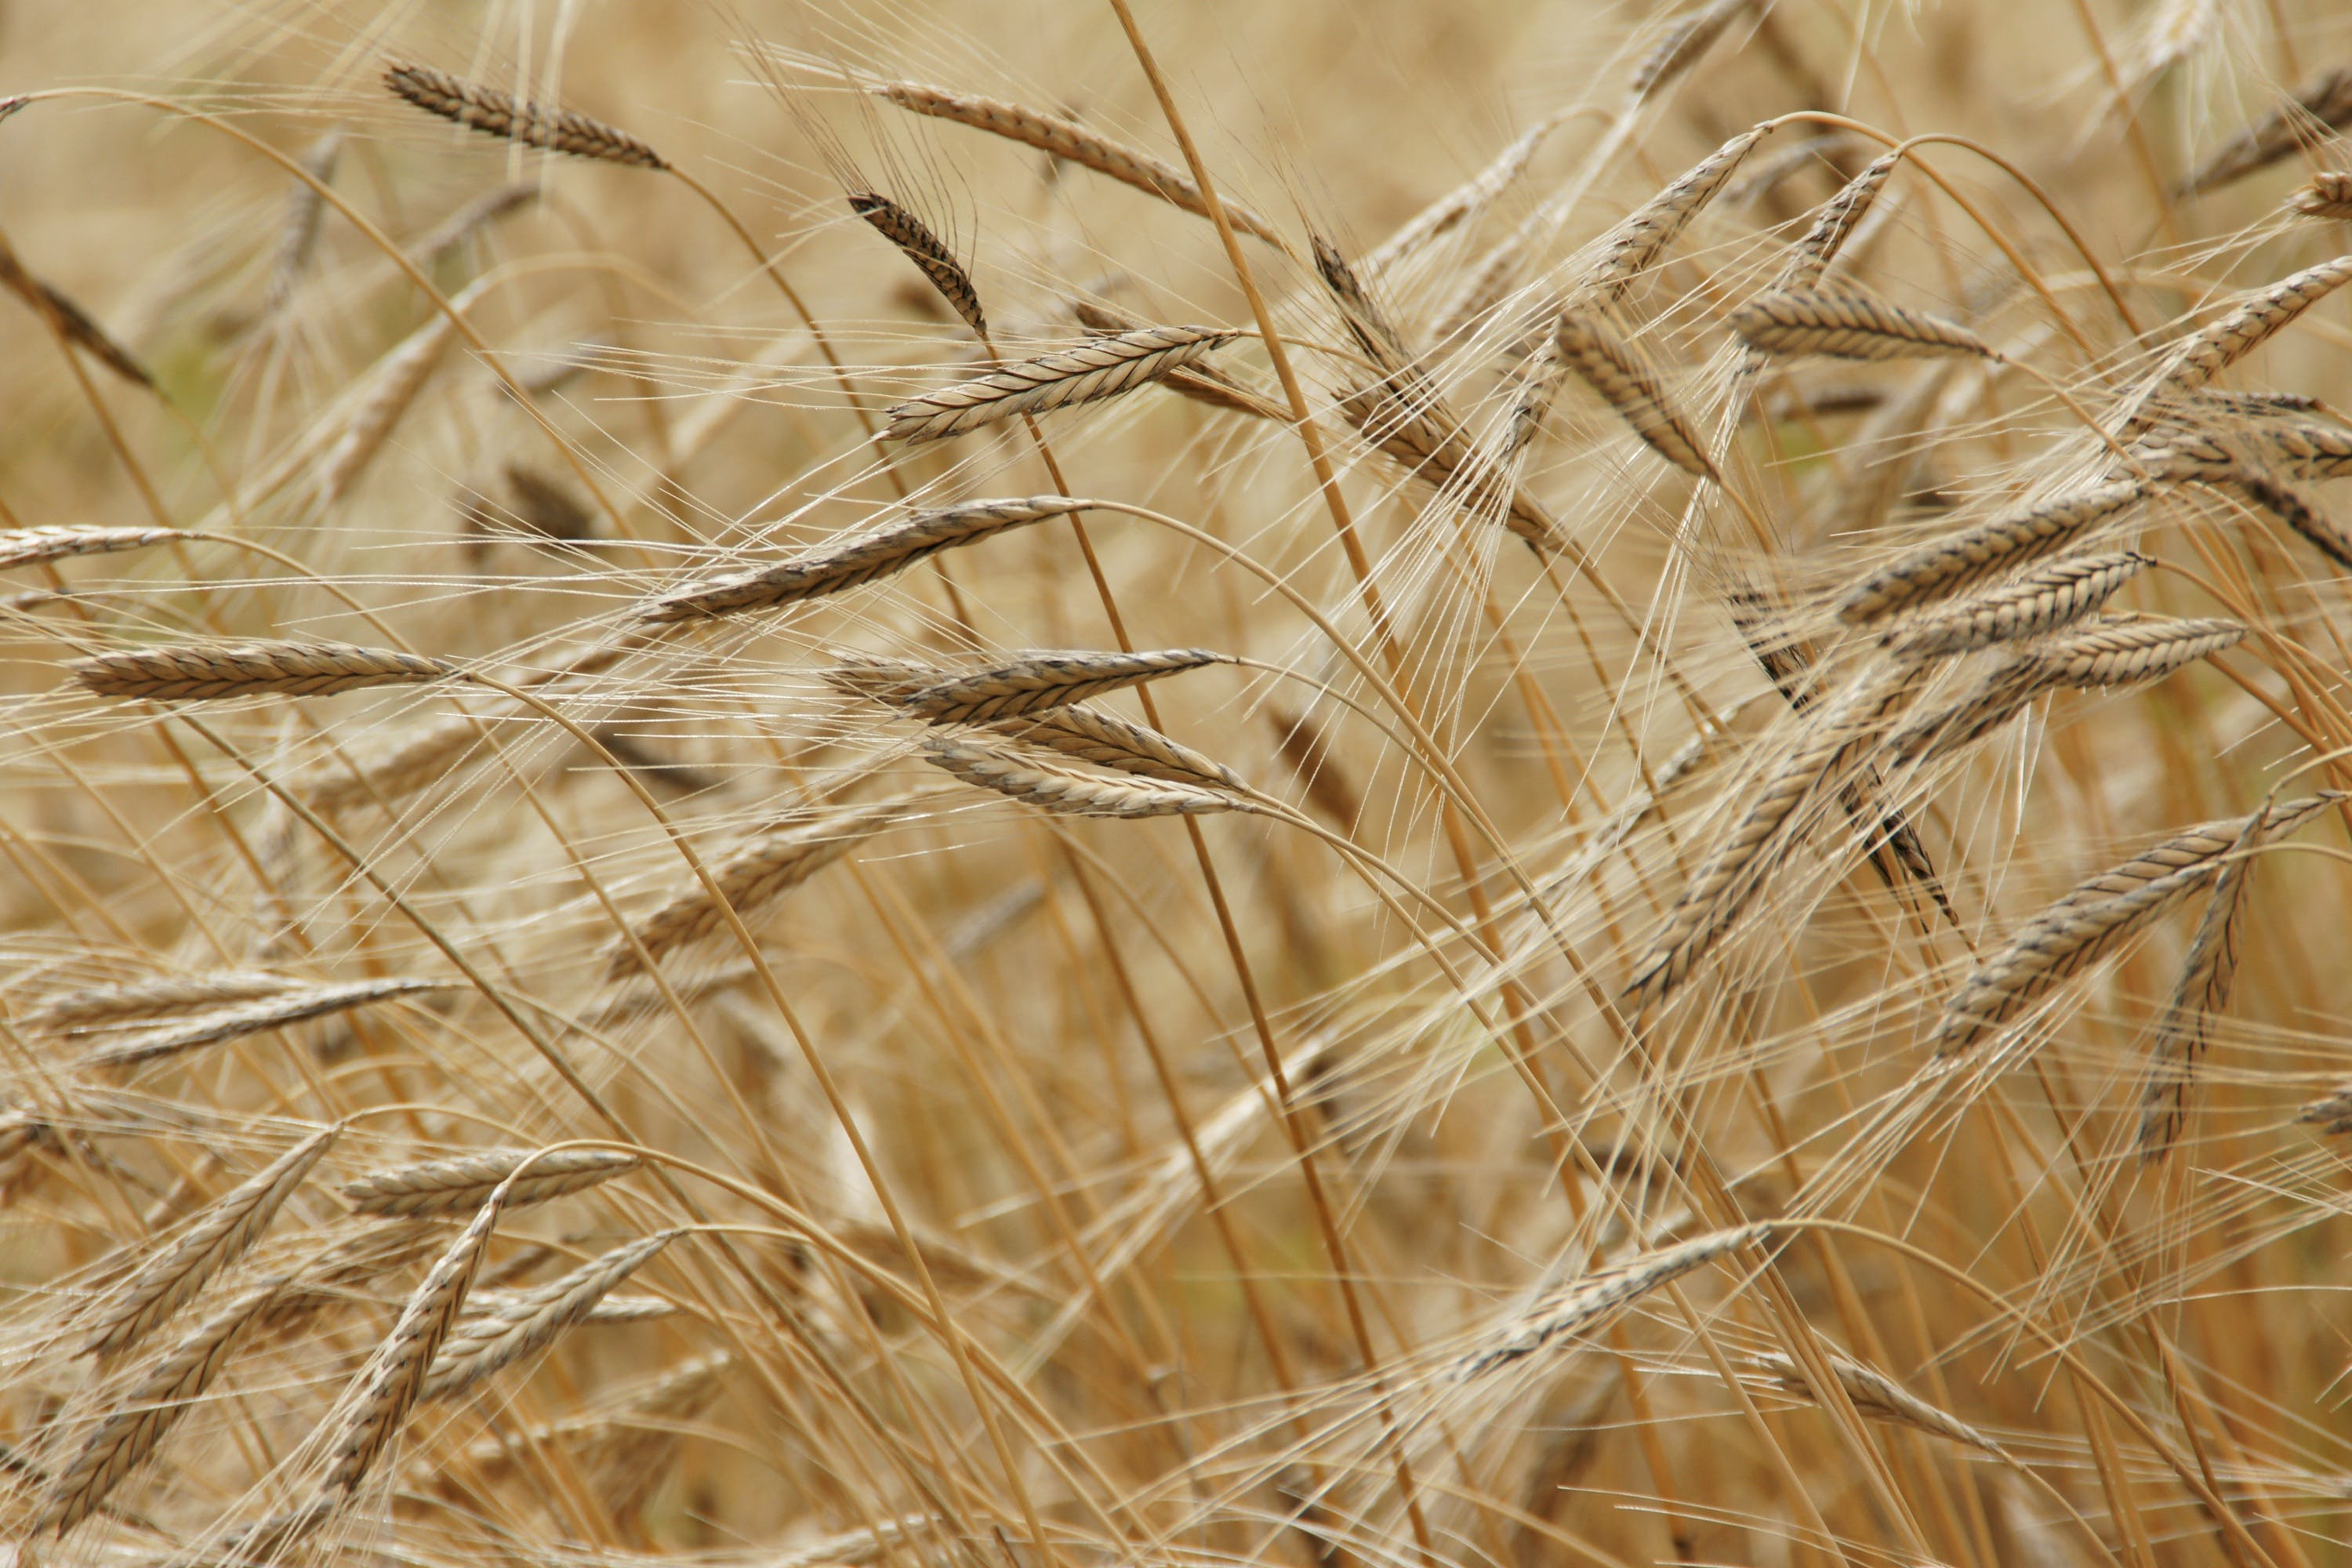 Wheat Field in Close Up Photography